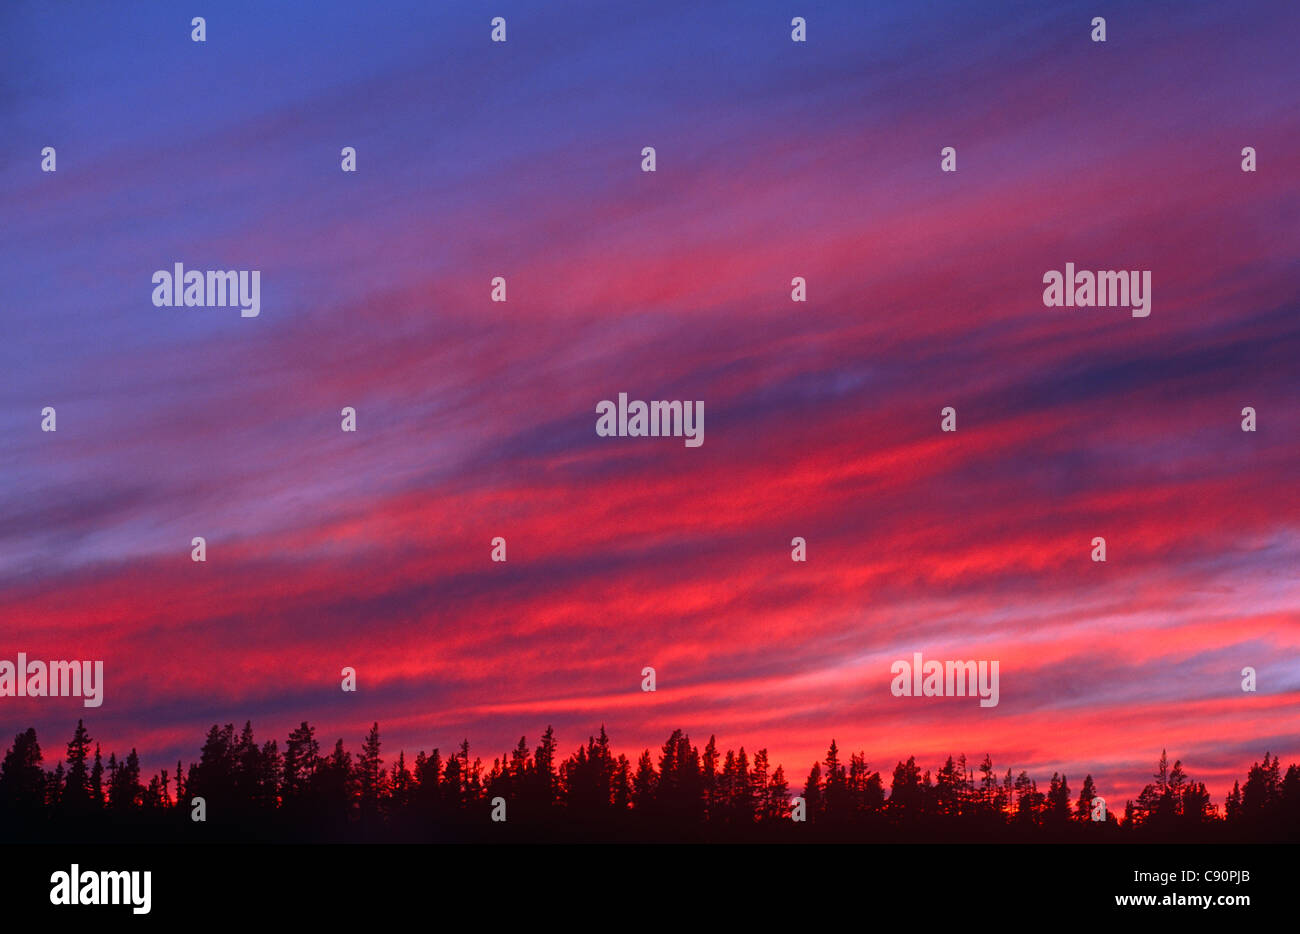 There are dramatic sunsets over the landscape of the Dalarna region. Lovasen, Norway - Stock Image